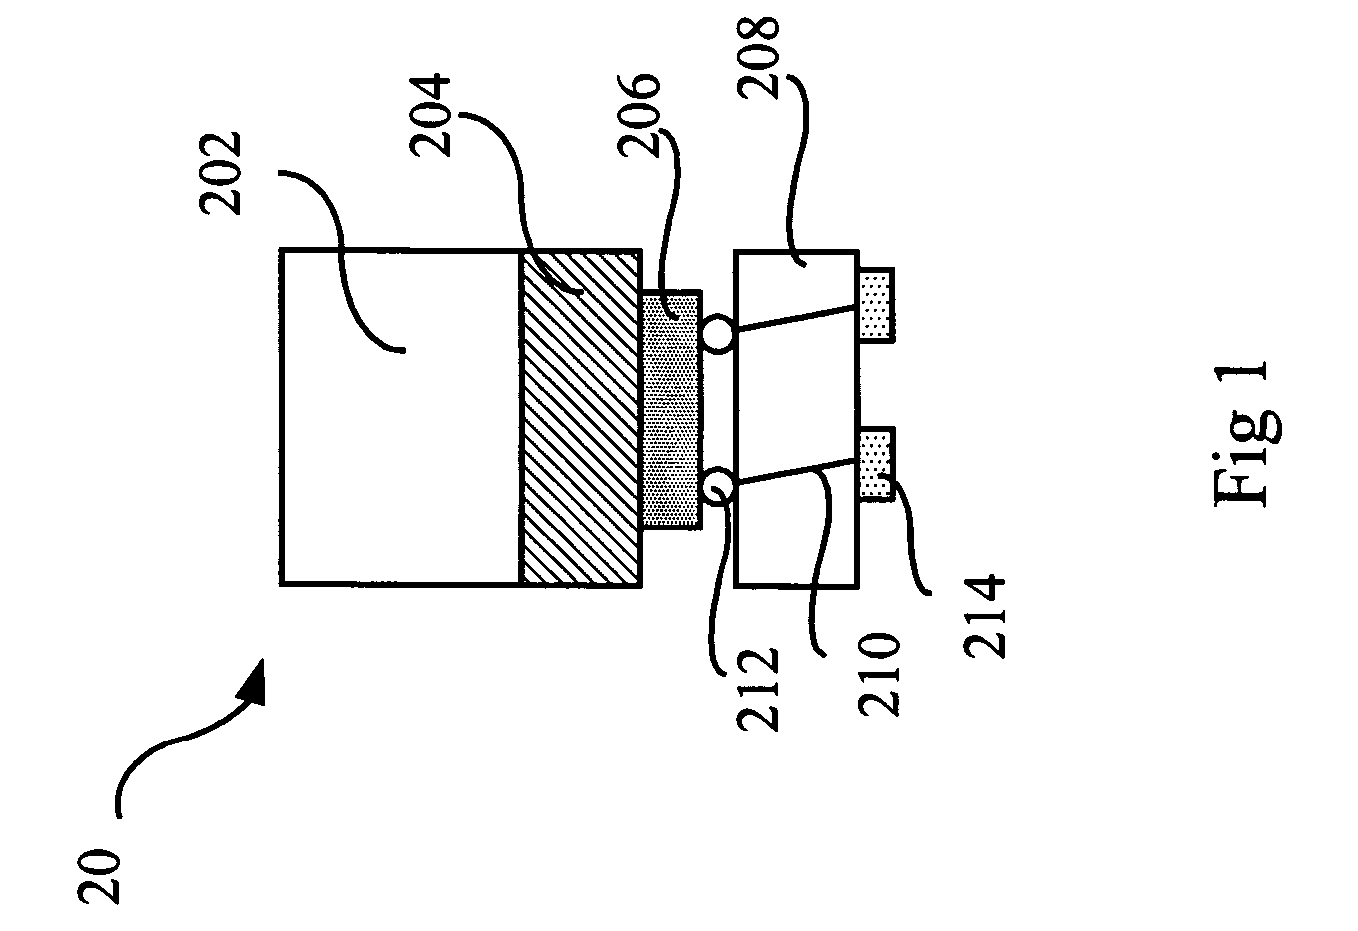 patent us20050287833 - light-emitting-diode structure and fabrication method thereof